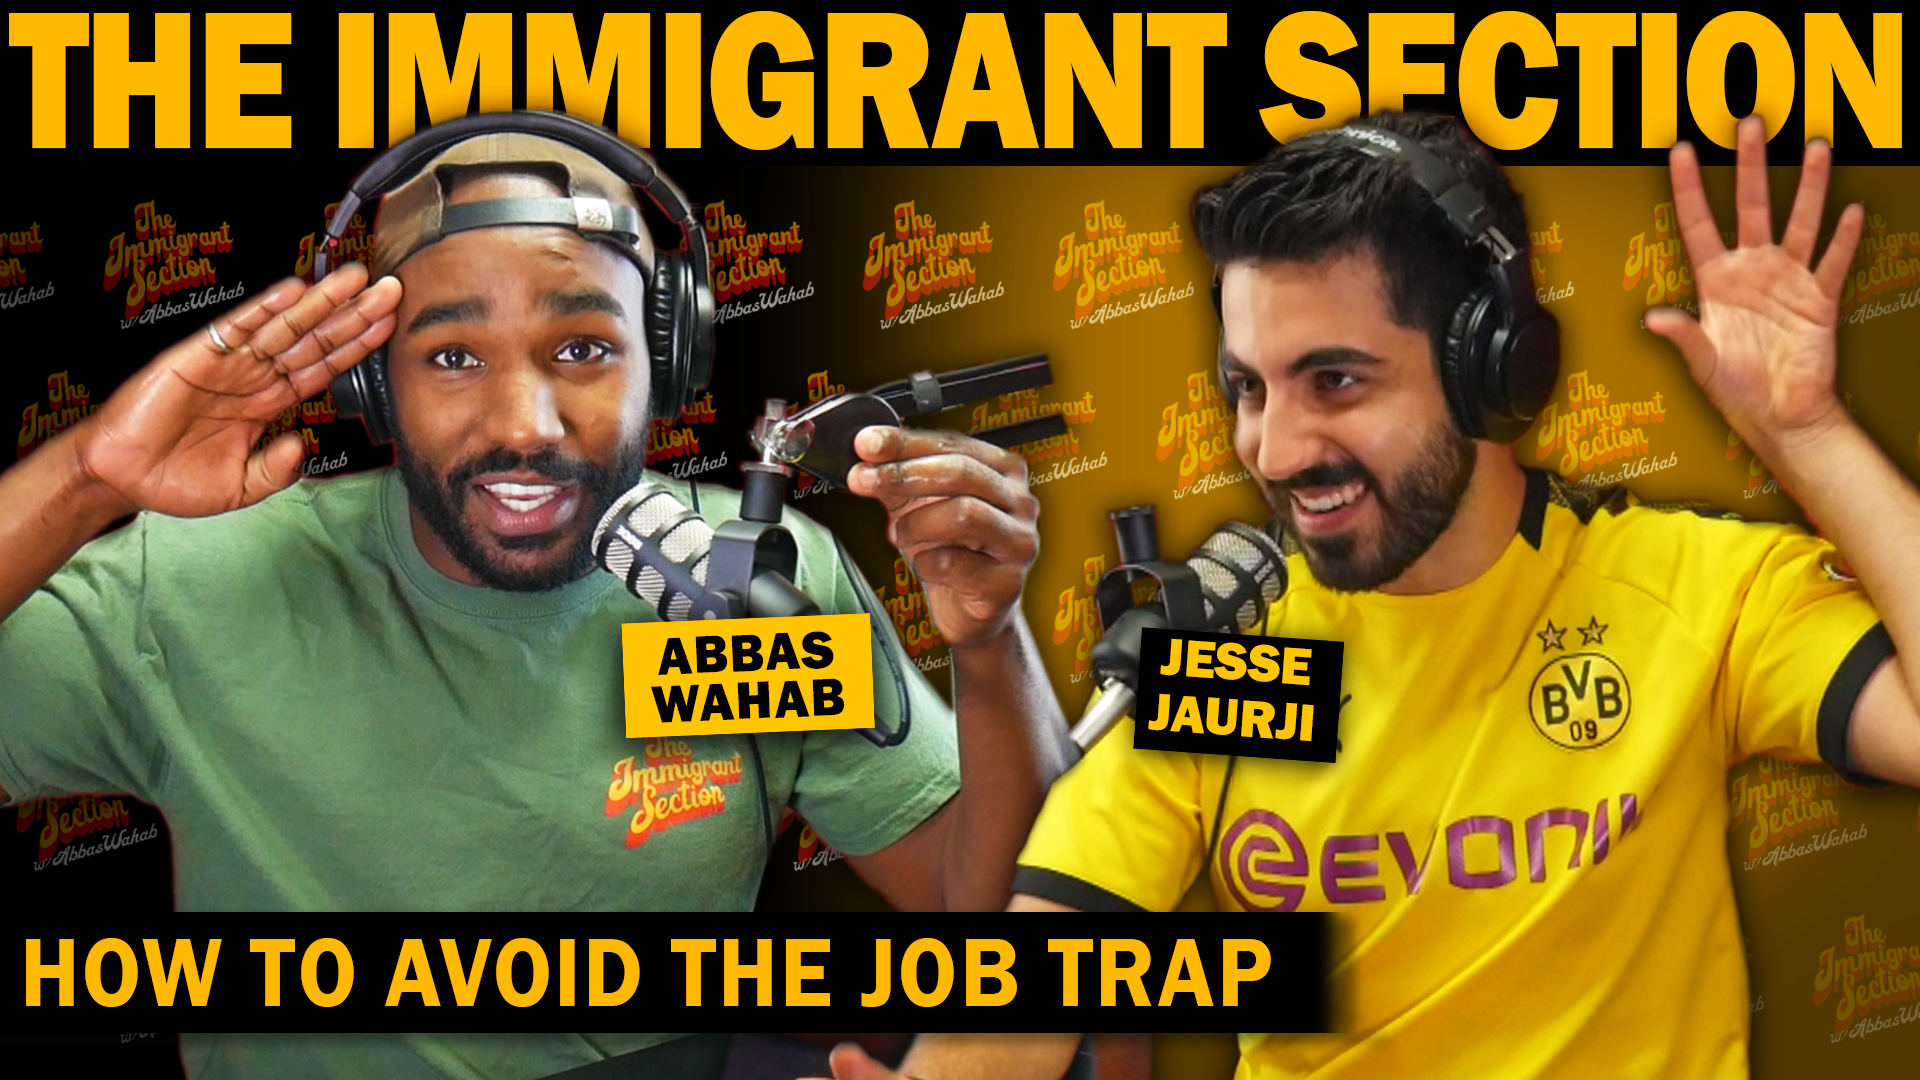 How To Avoid The Job Trap | The Immigrant Section with Abbas Wahab - 122